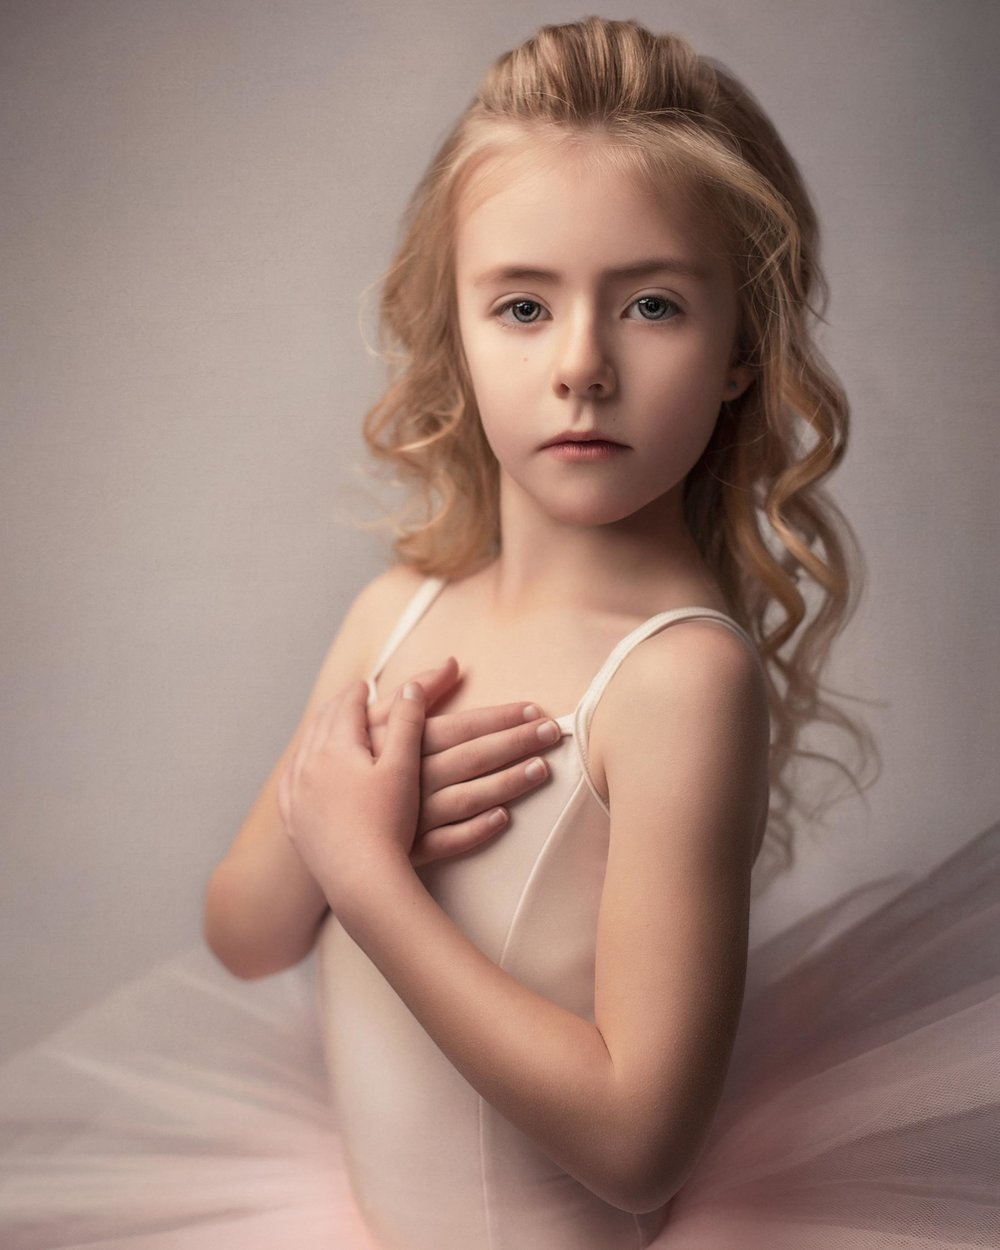 barbara_macferrin_photography_boulder_colorado_80303_fine_art_children_ballerina_girl_pink.jpg